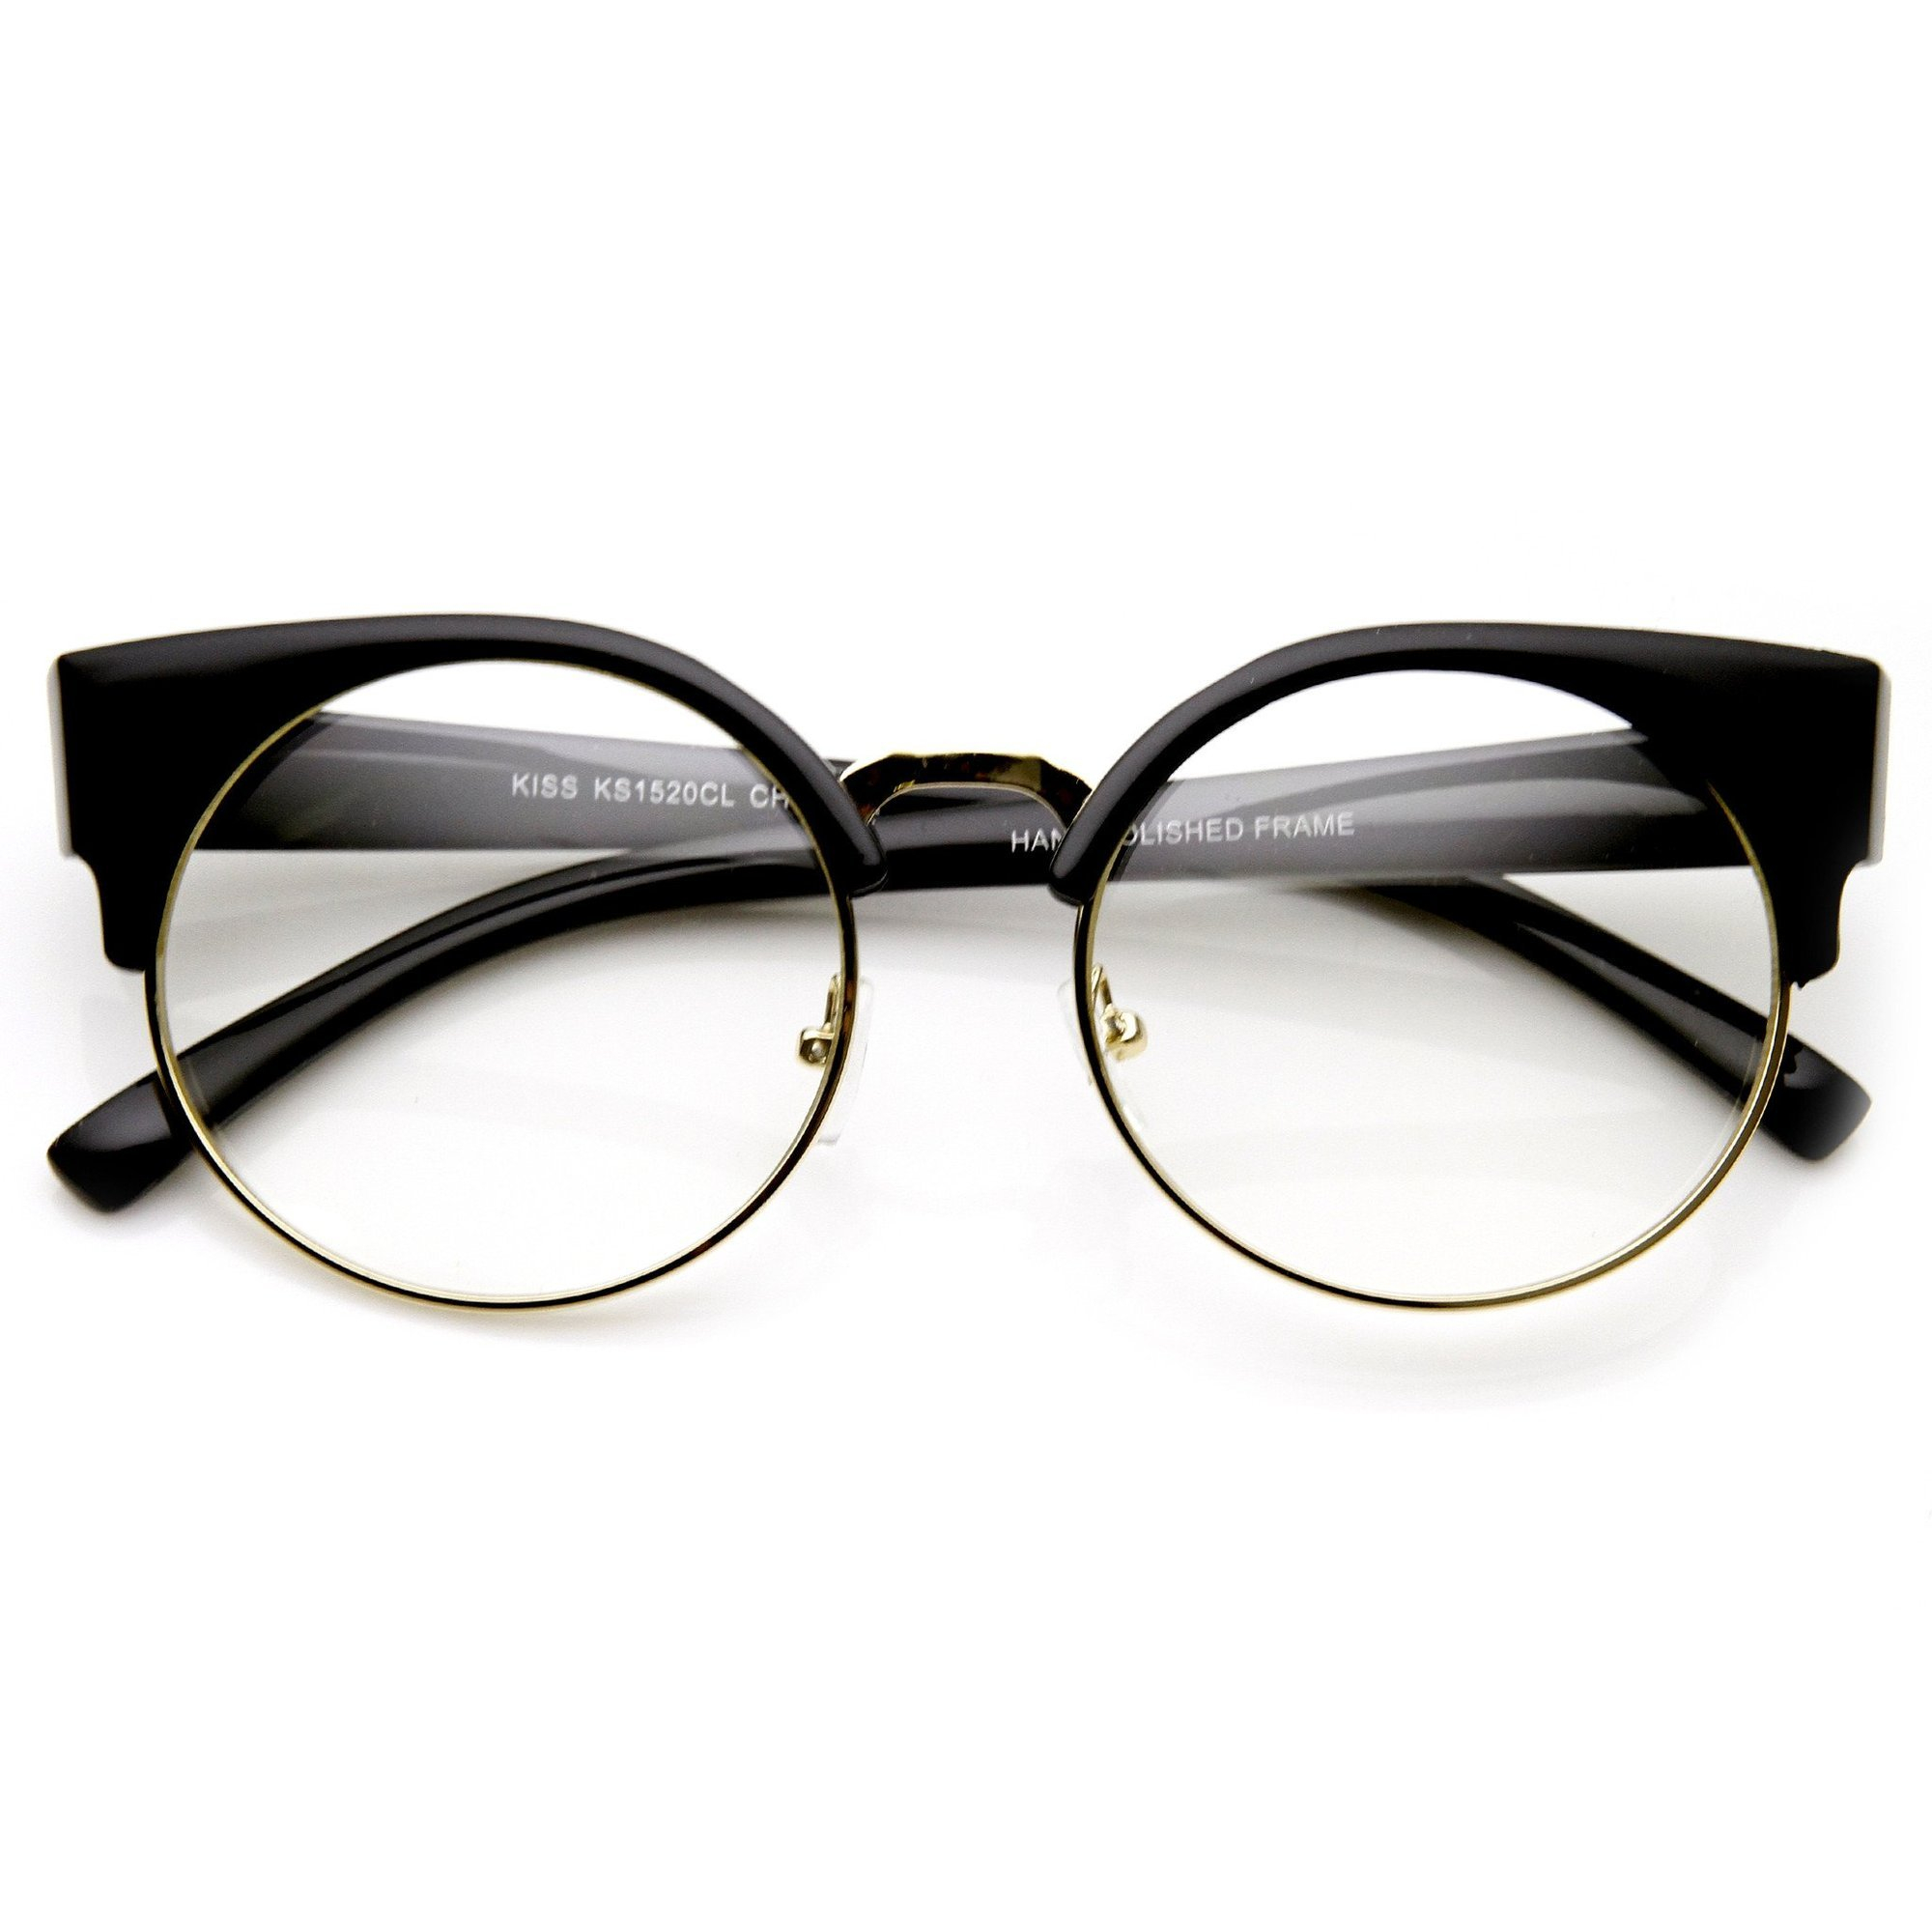 Image of Indie Hipster Round Cat Eye Clear Lens Half Frame Glasses 9351